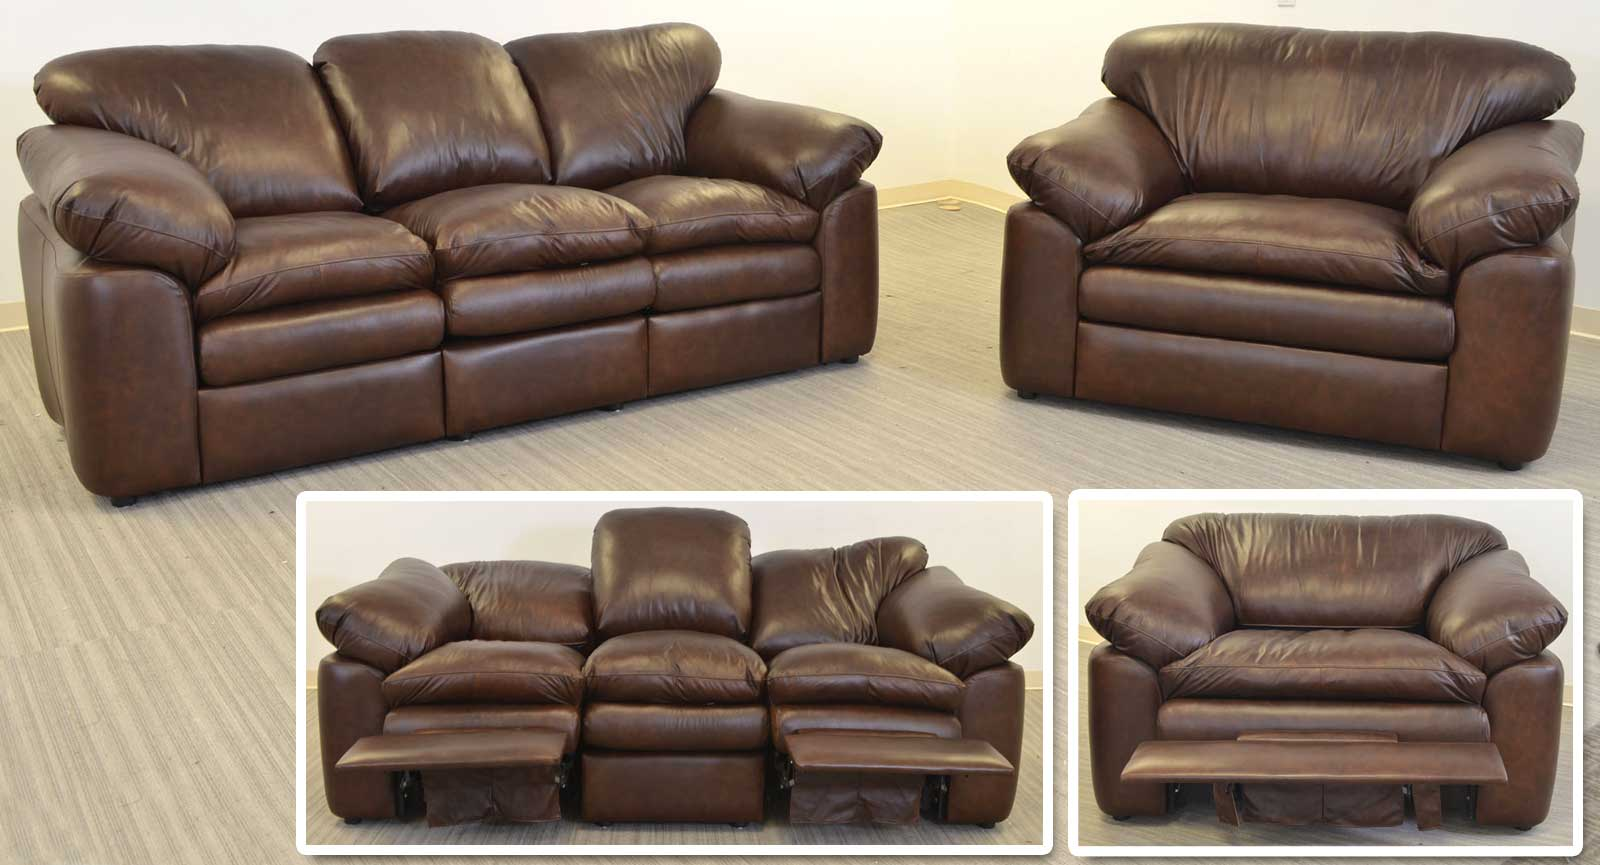 Three Seat Sofa Chair And Half 3 Incliners